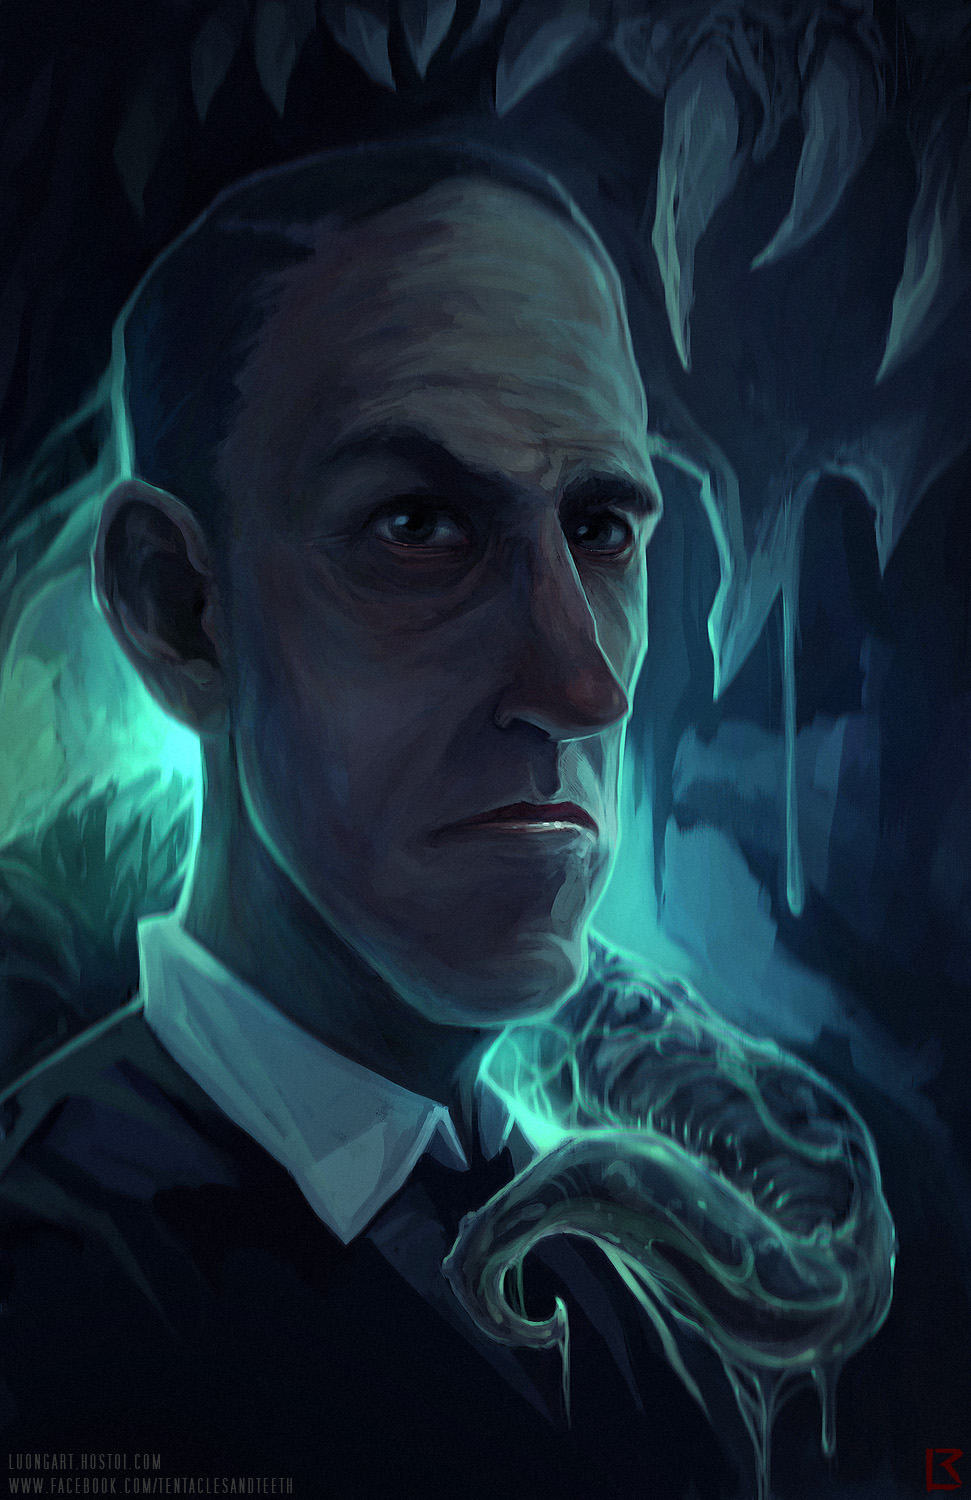 TentaclesAndTeeth's digital portrait of the master of horror